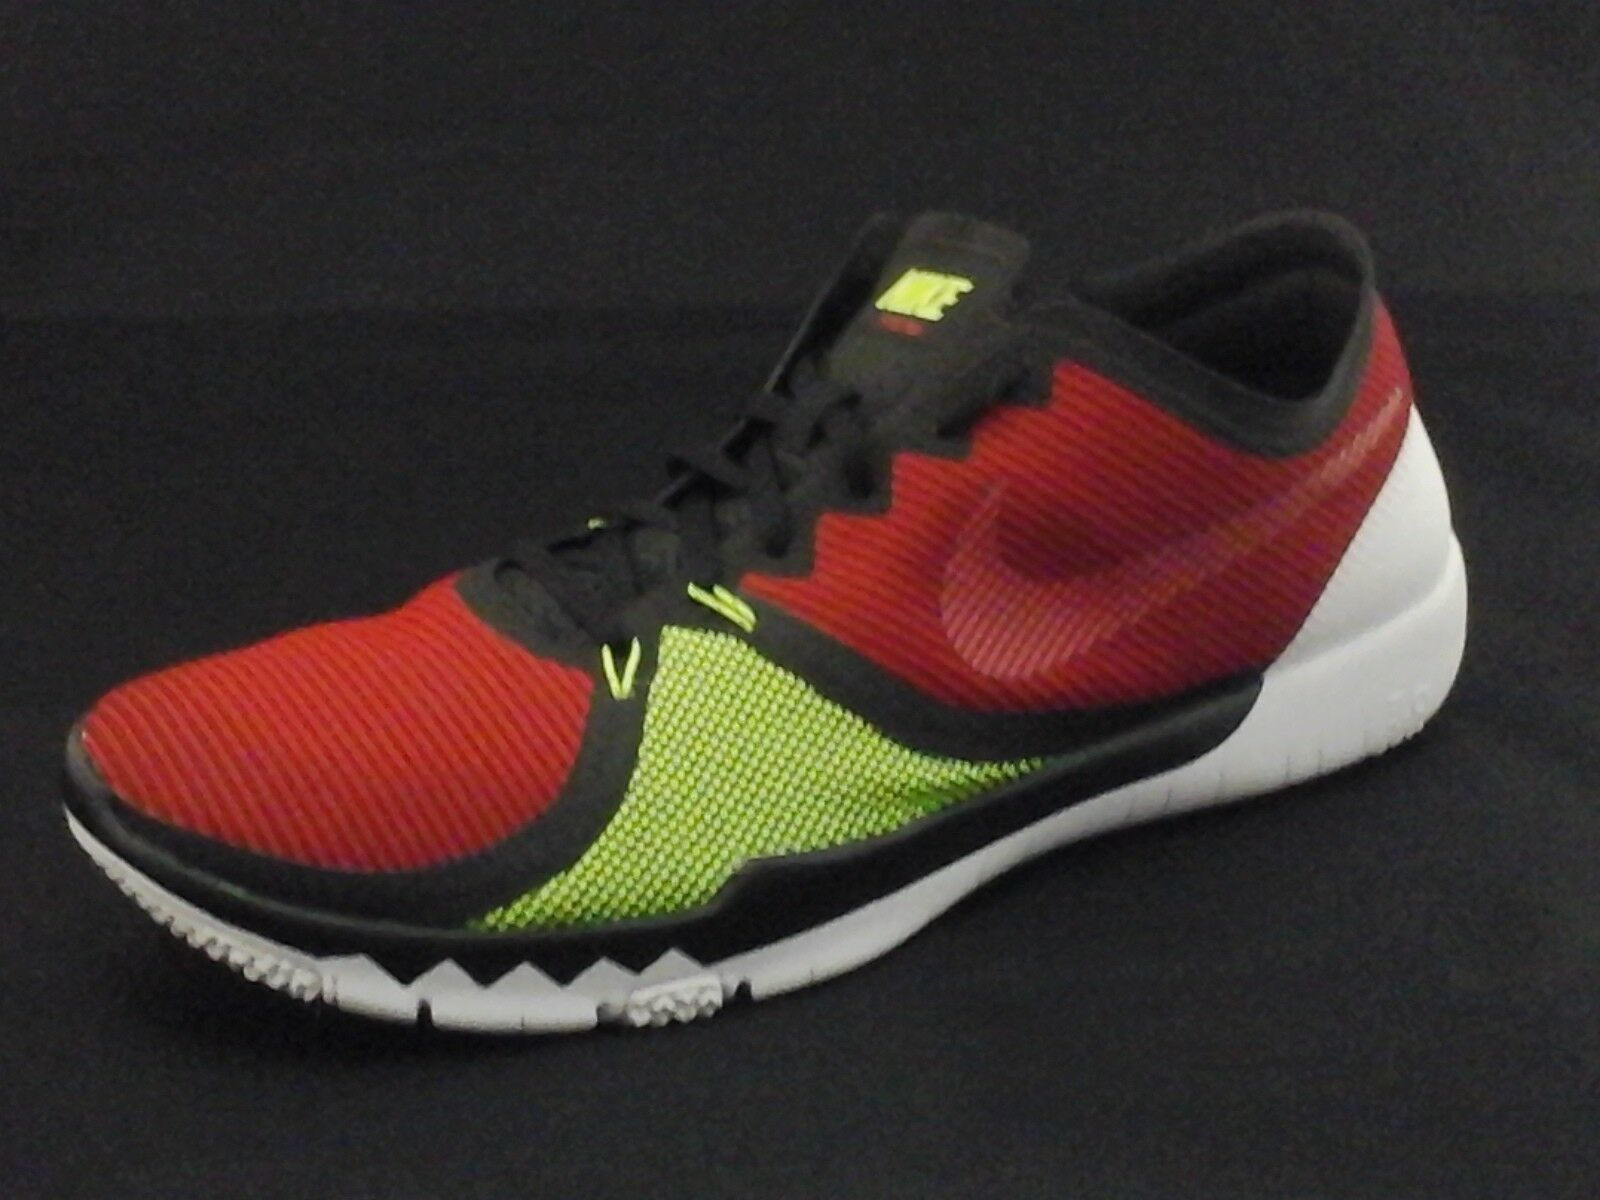 NIKE Free 3.0 shoes Red Neon Yellow Black 749361-066 Running US 13 47.5  120 New